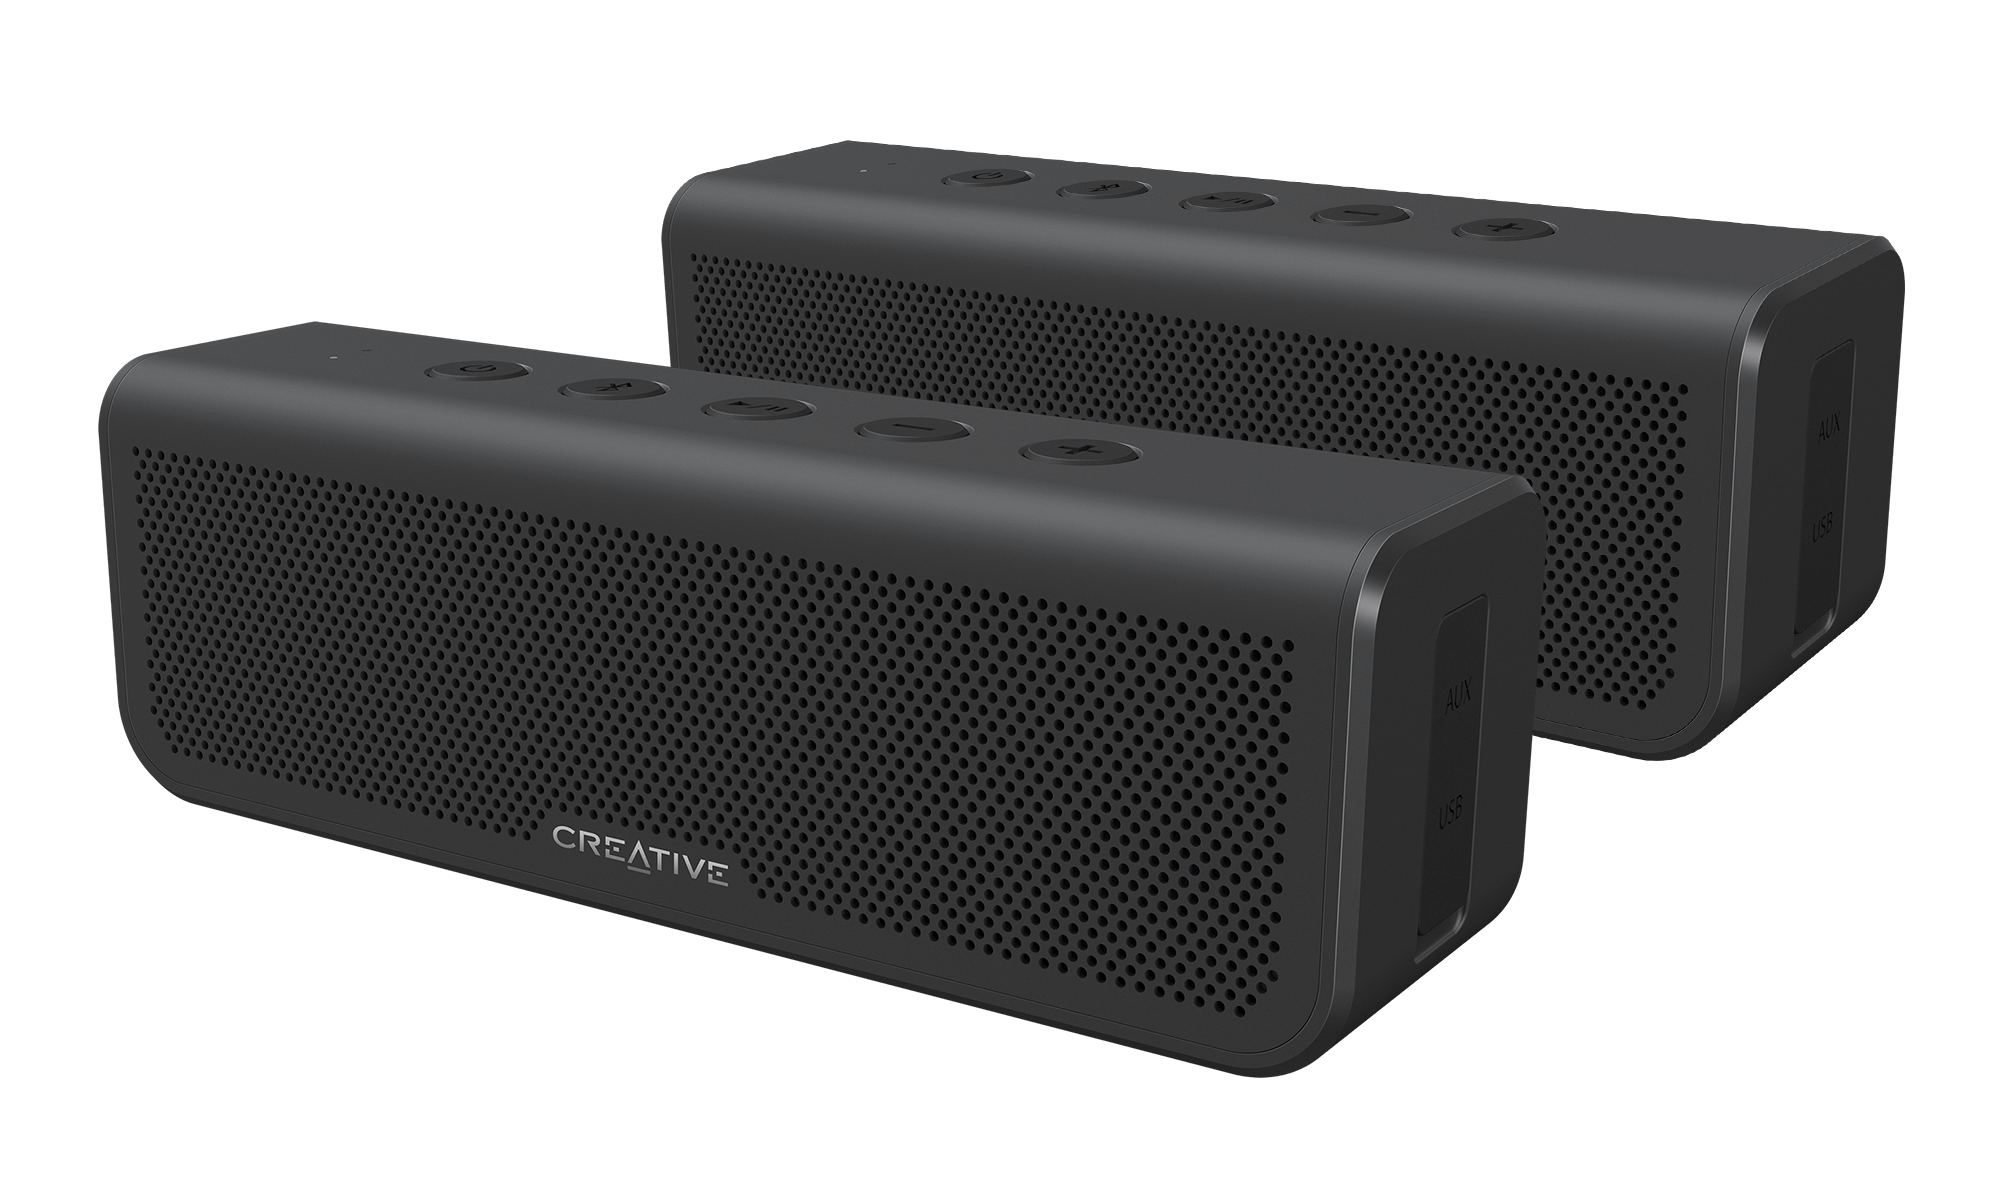 Audio Docks & Mini Speakers Ships Today Moderate Price Competent Gray Ampd Fabric Mini Outdoor Wireless Speaker